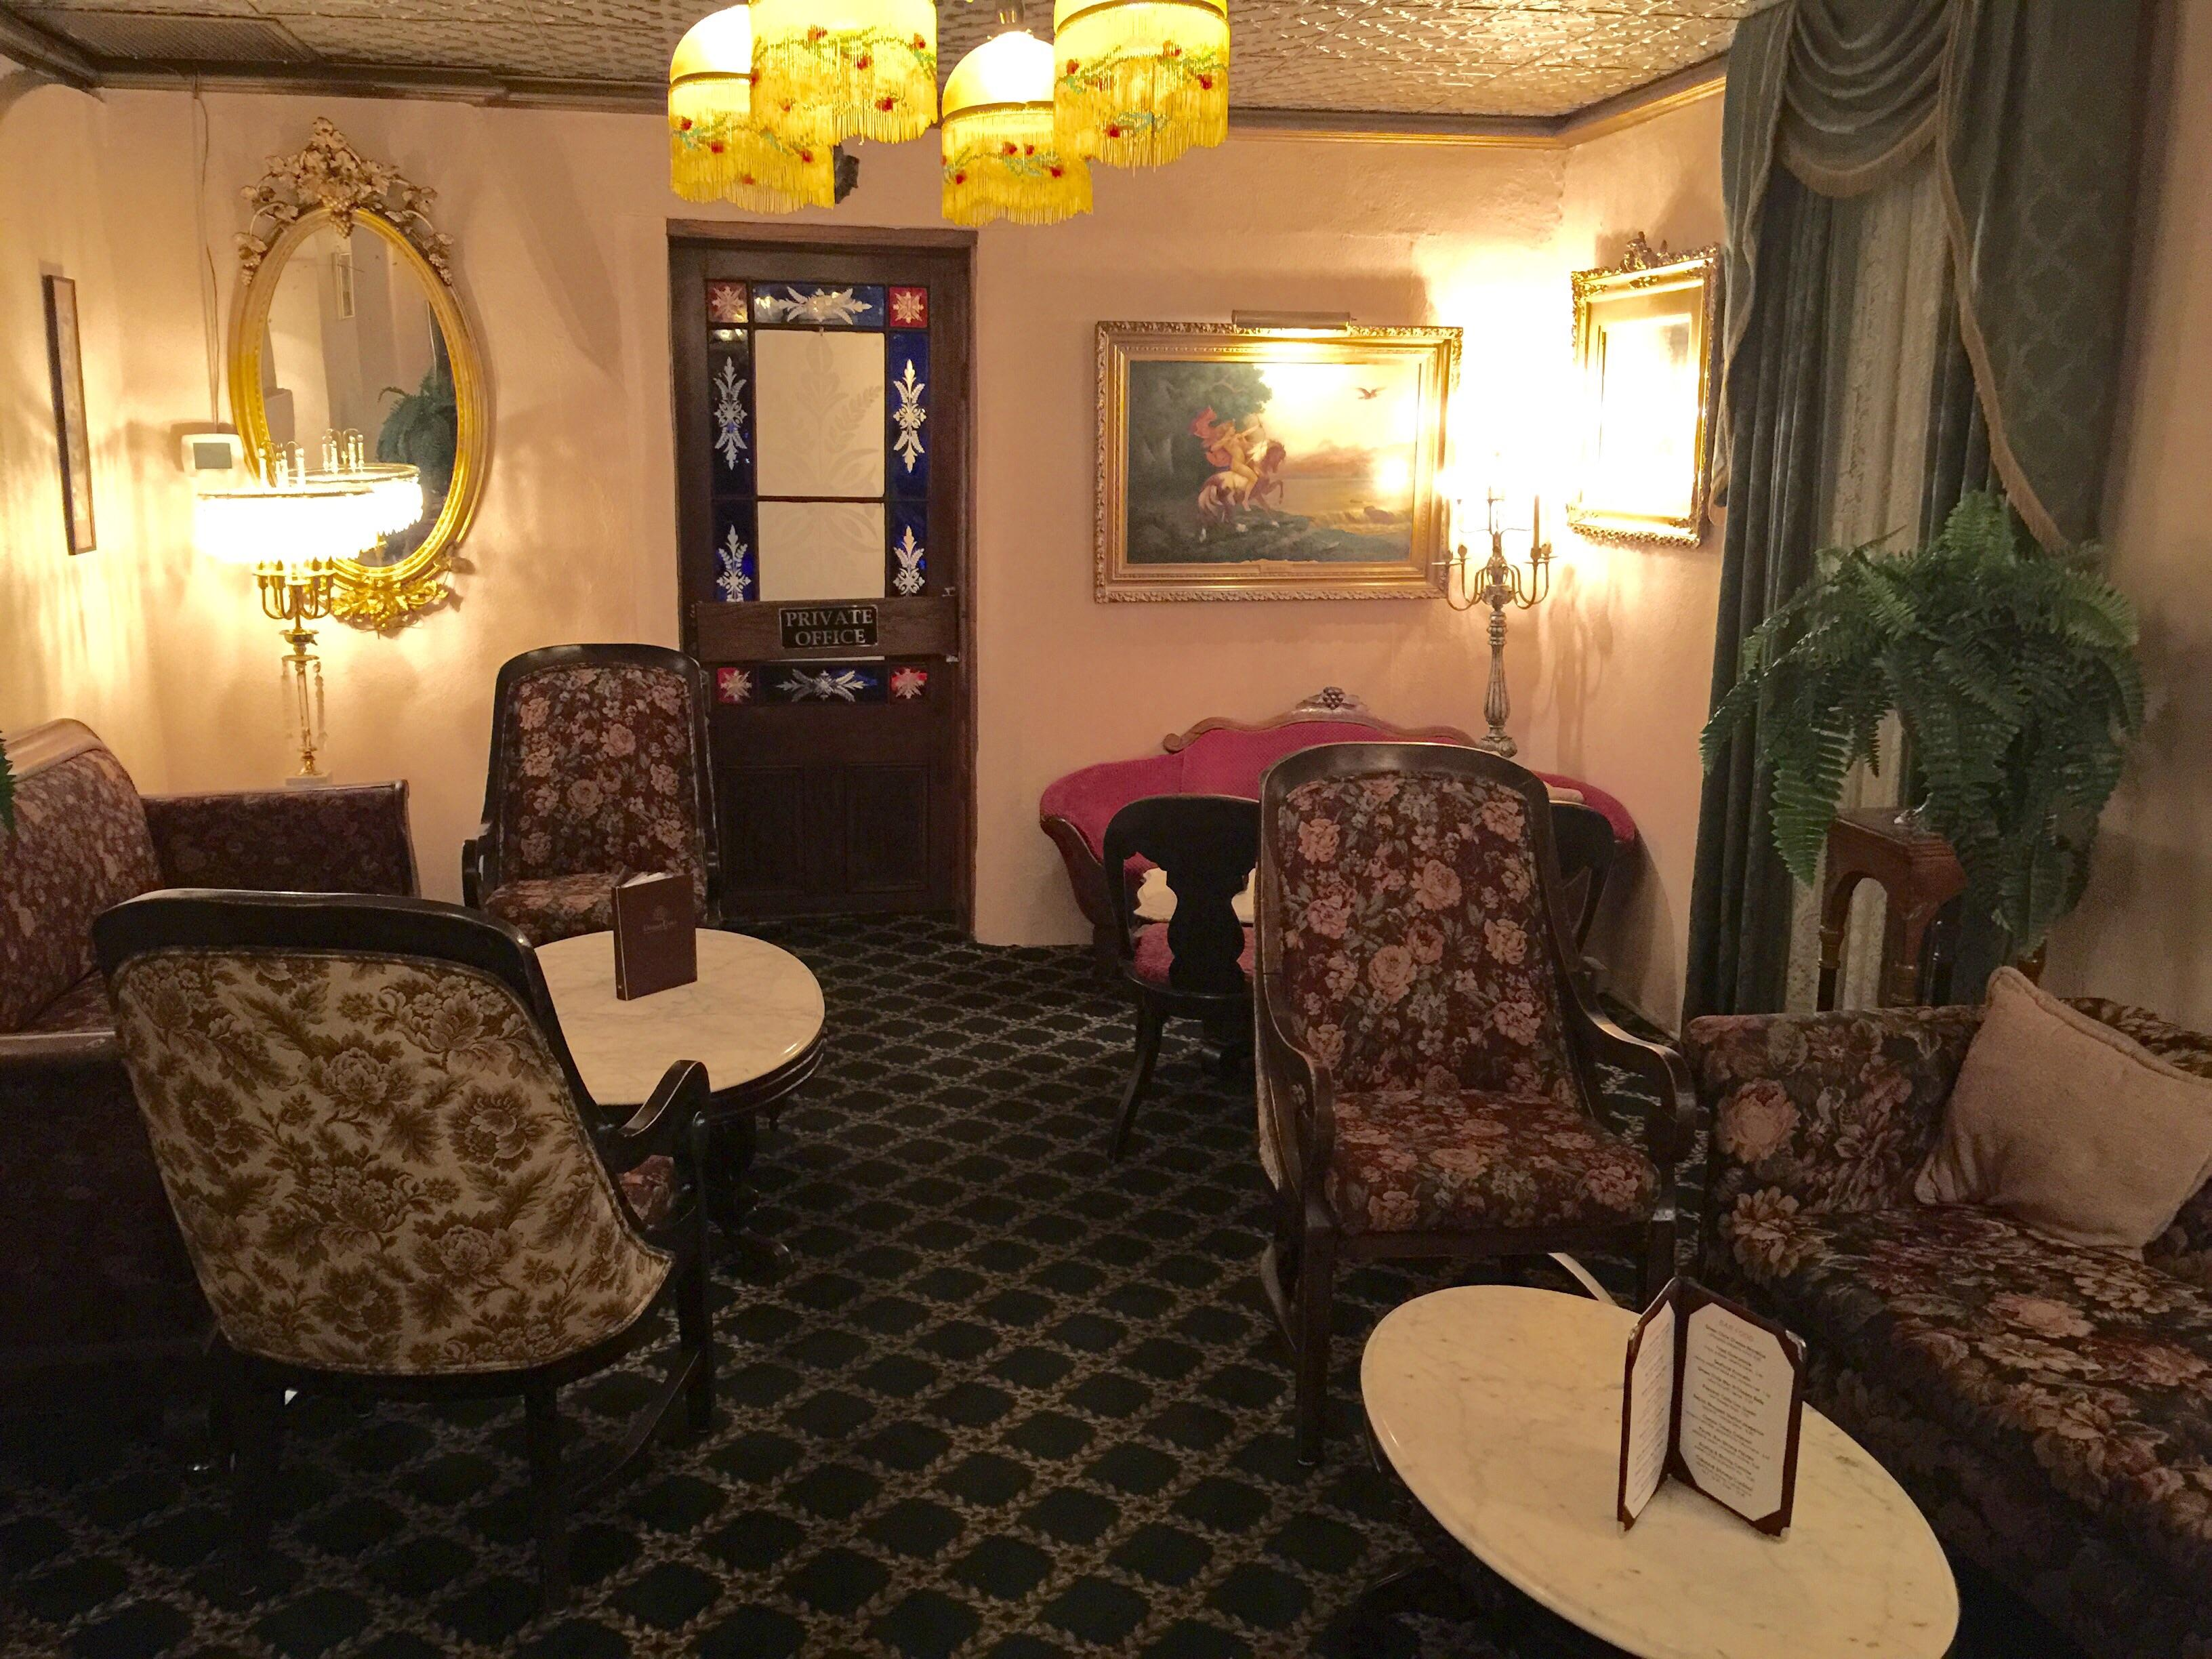 Double Eagle. A classic restaurant with an antique parlor room. Las Cruces.